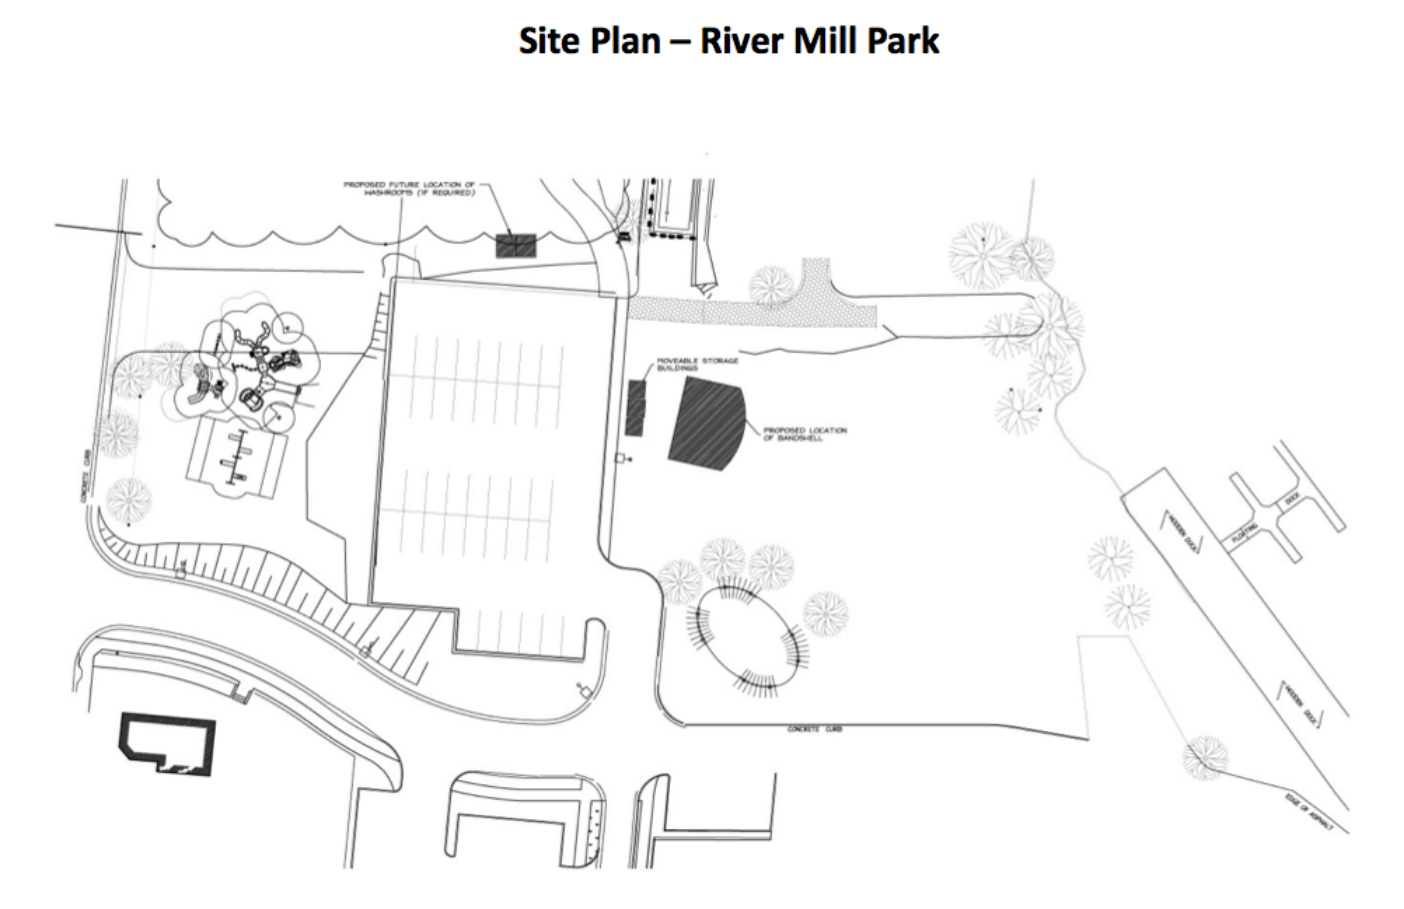 Permanent bandshell for huntsville 39 s river mill park to be for Site plans online